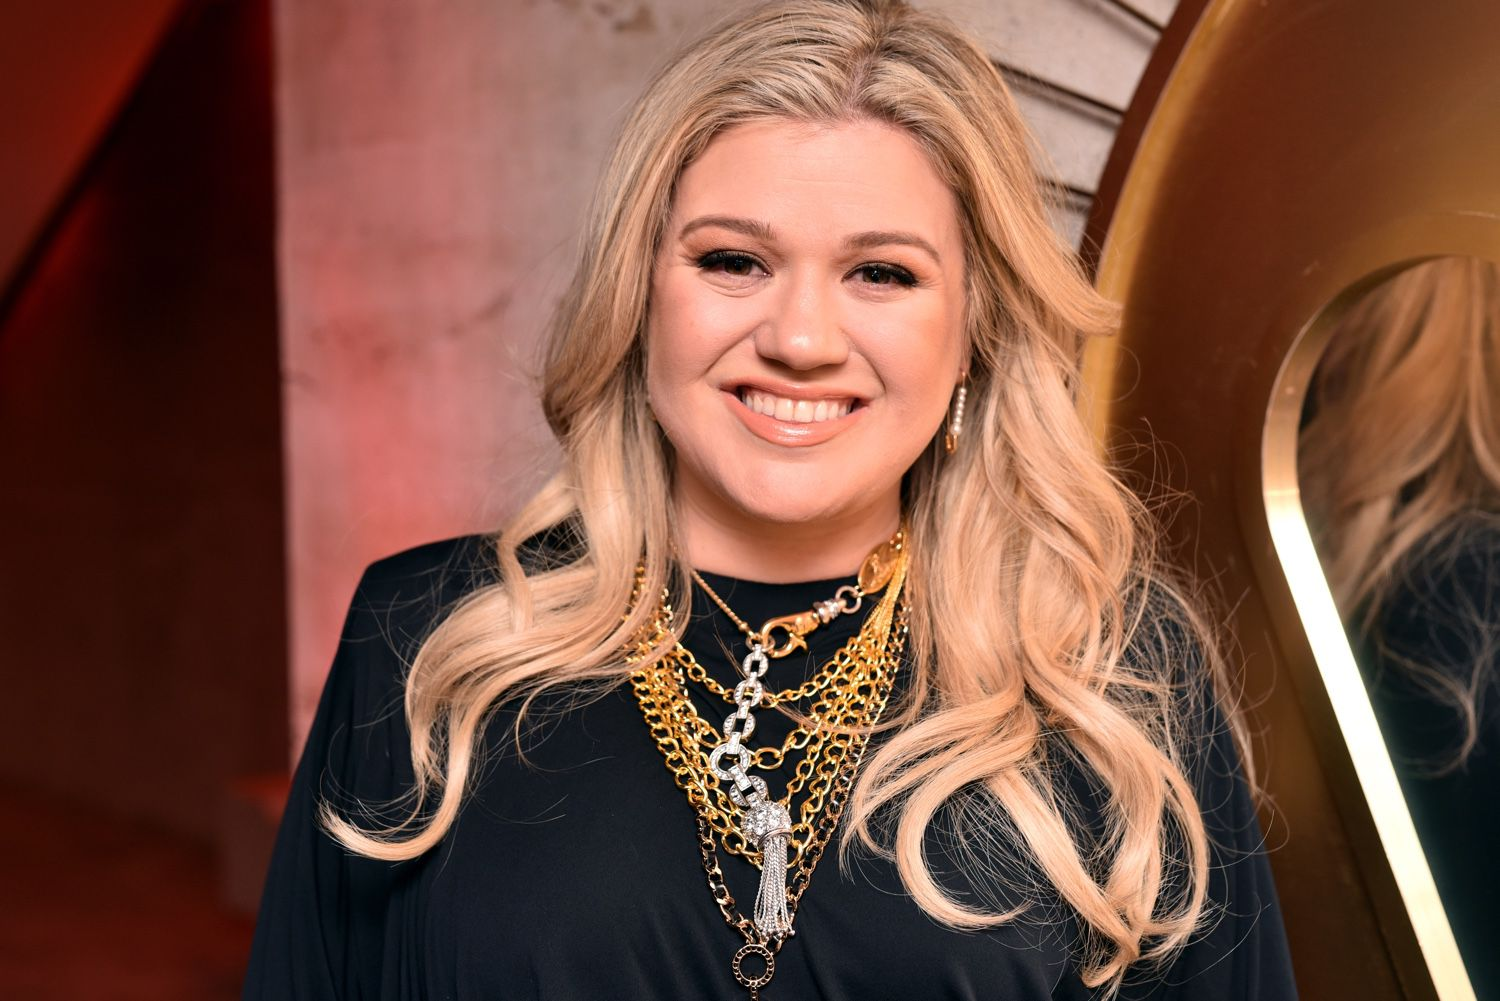 Biography of Kelly Clarkson, First American Idol